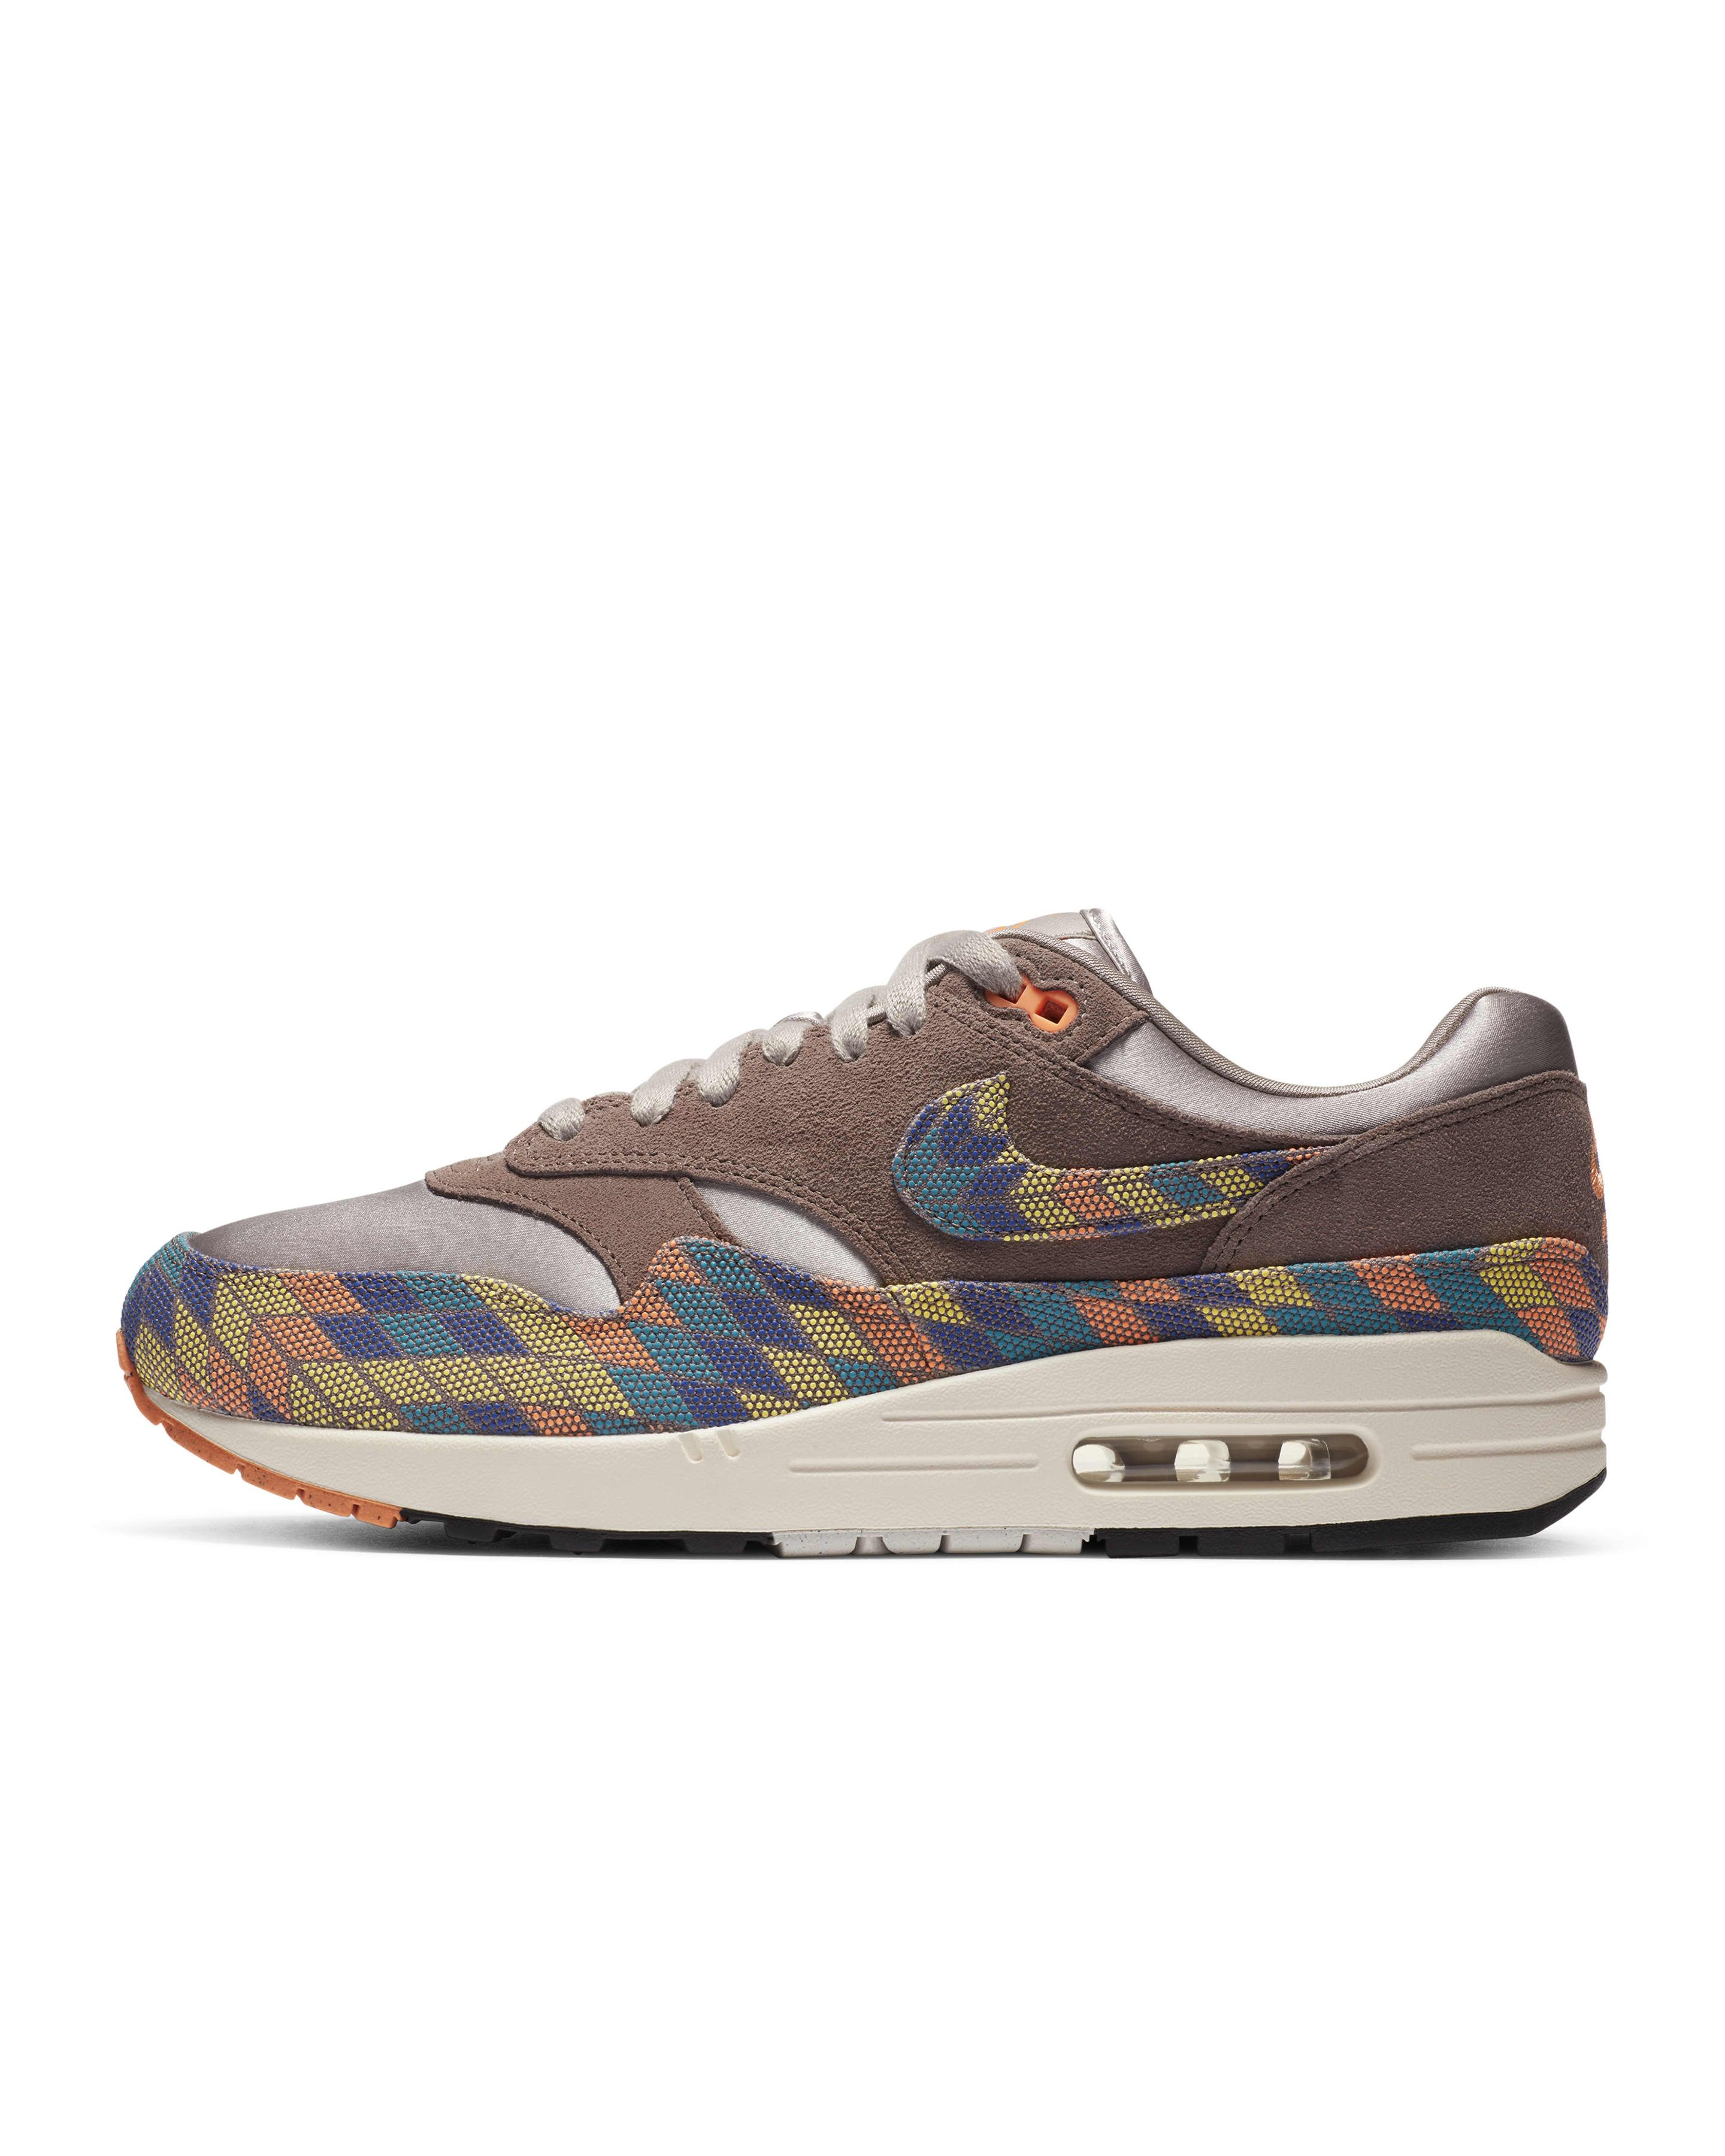 Best Nike Air Max Shoes 2021   Air Max Releases and Deals